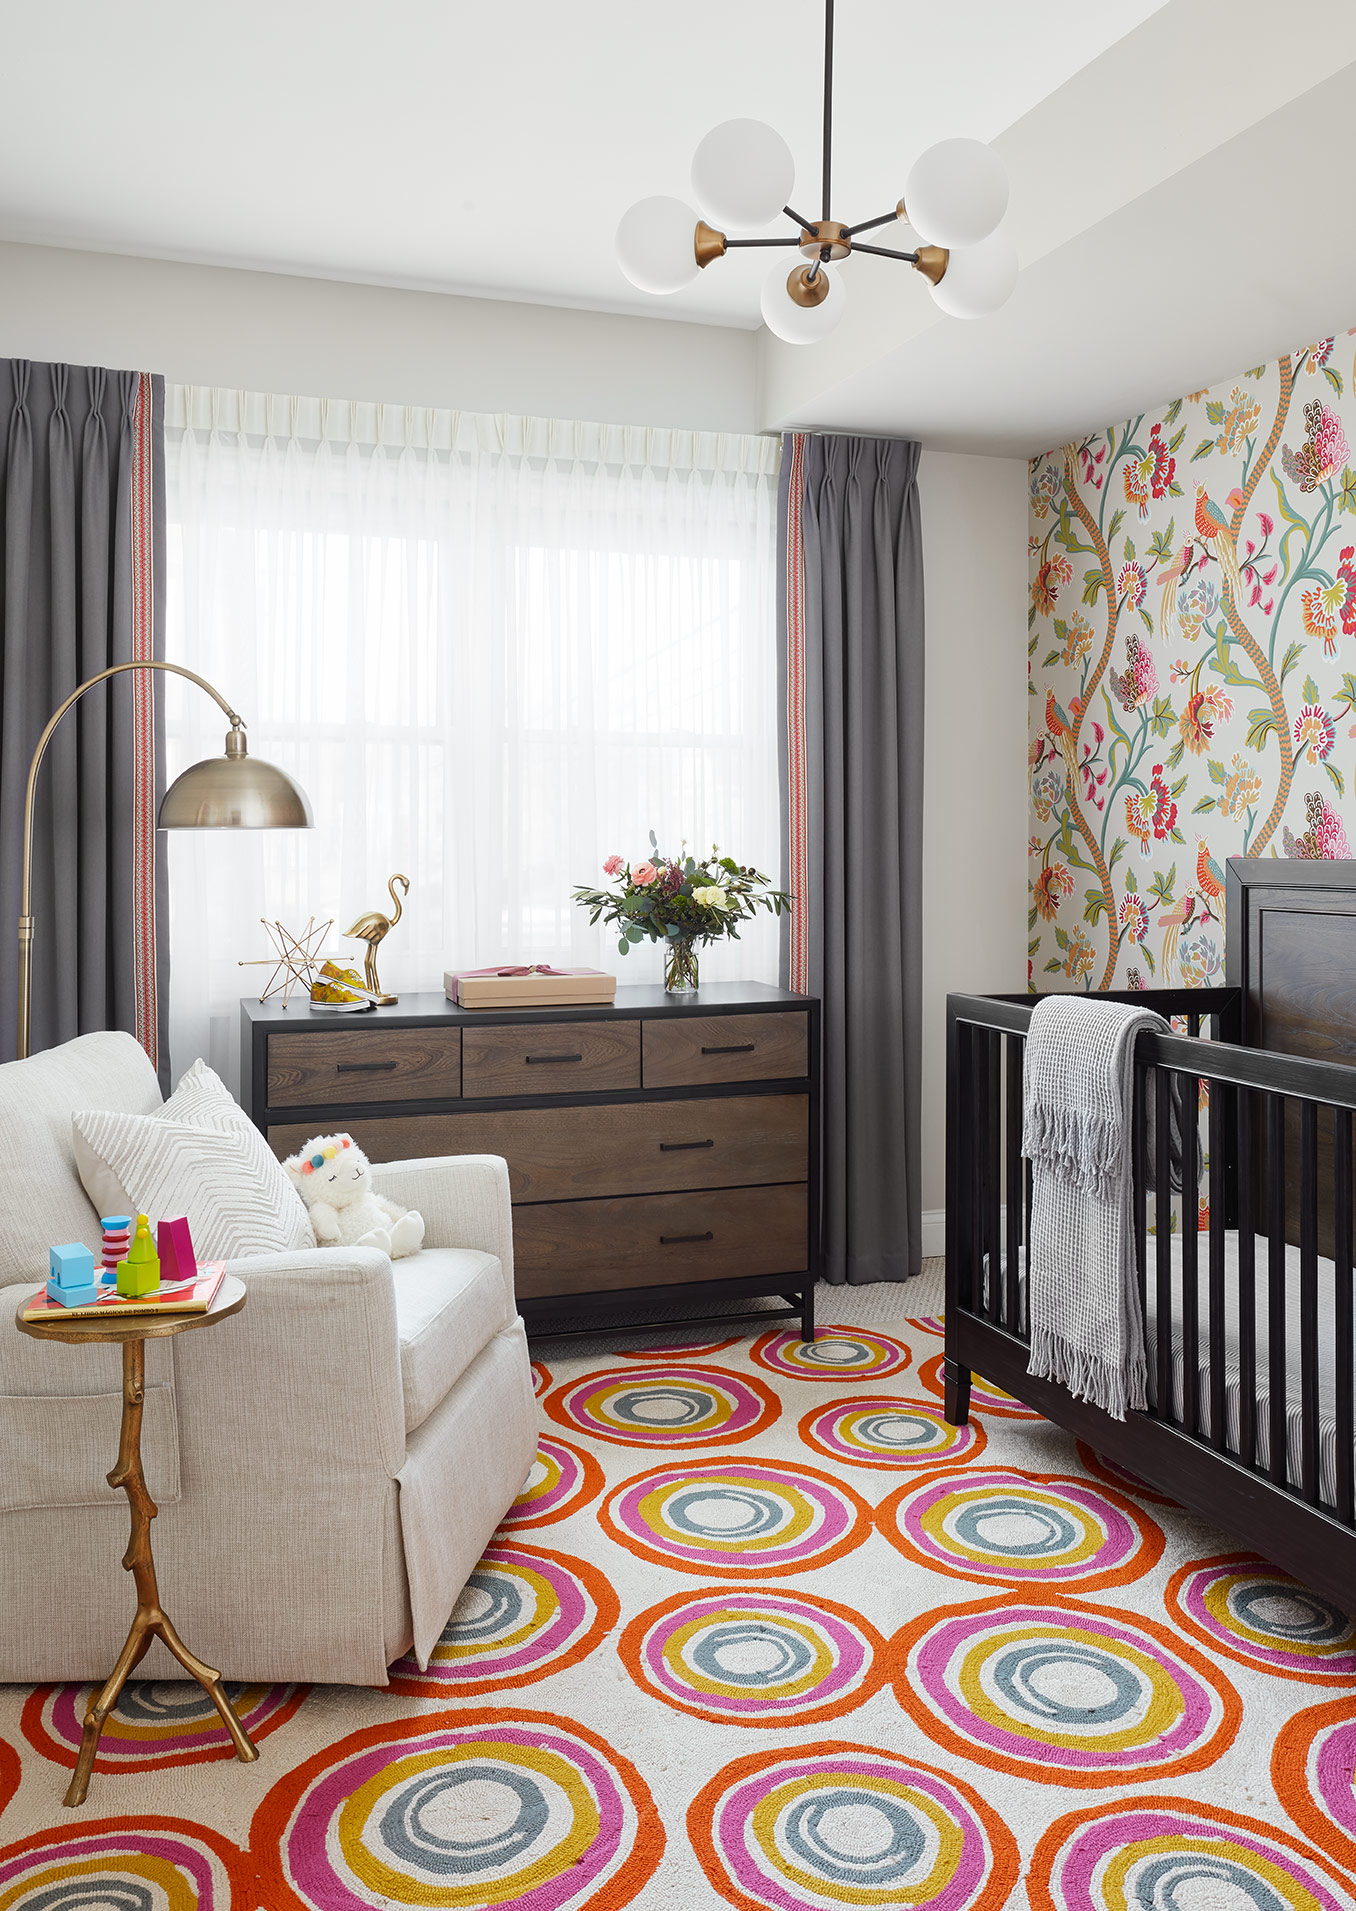 Nursery - Interior Design - Art Curation  by Paula Interiors